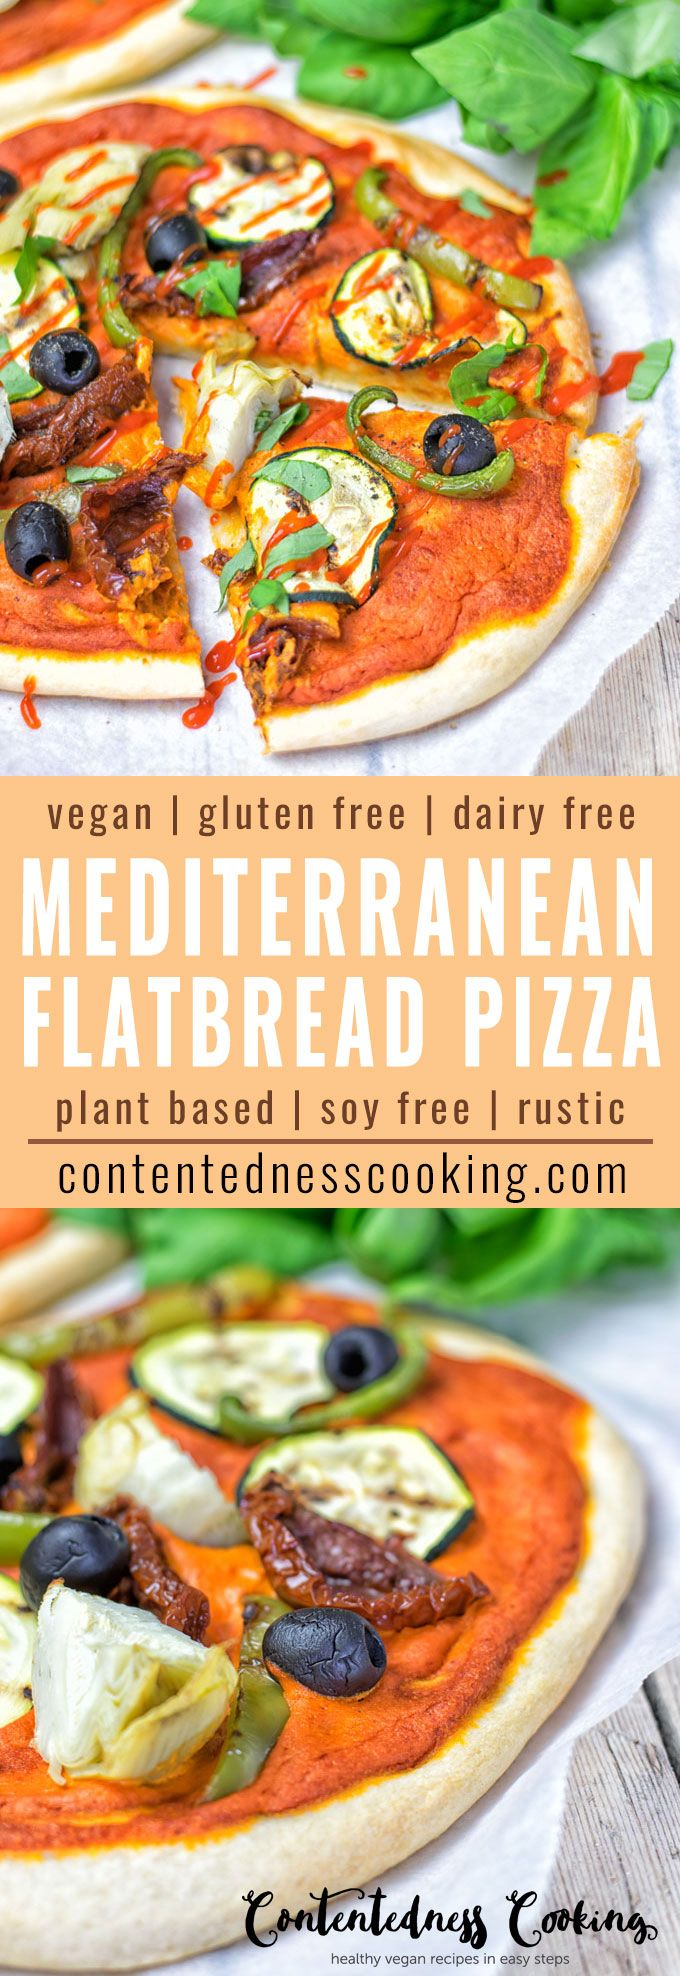 This Mediterranean Flatbread Pizza is incredibly easy, delicious done in  just 20 minutes and dairy free. Makes an amazing vegan and gluten free lunch, dinner or snack. It's made with olives, sun dried tomatoes and a mouthwatering homemade Muhammara.